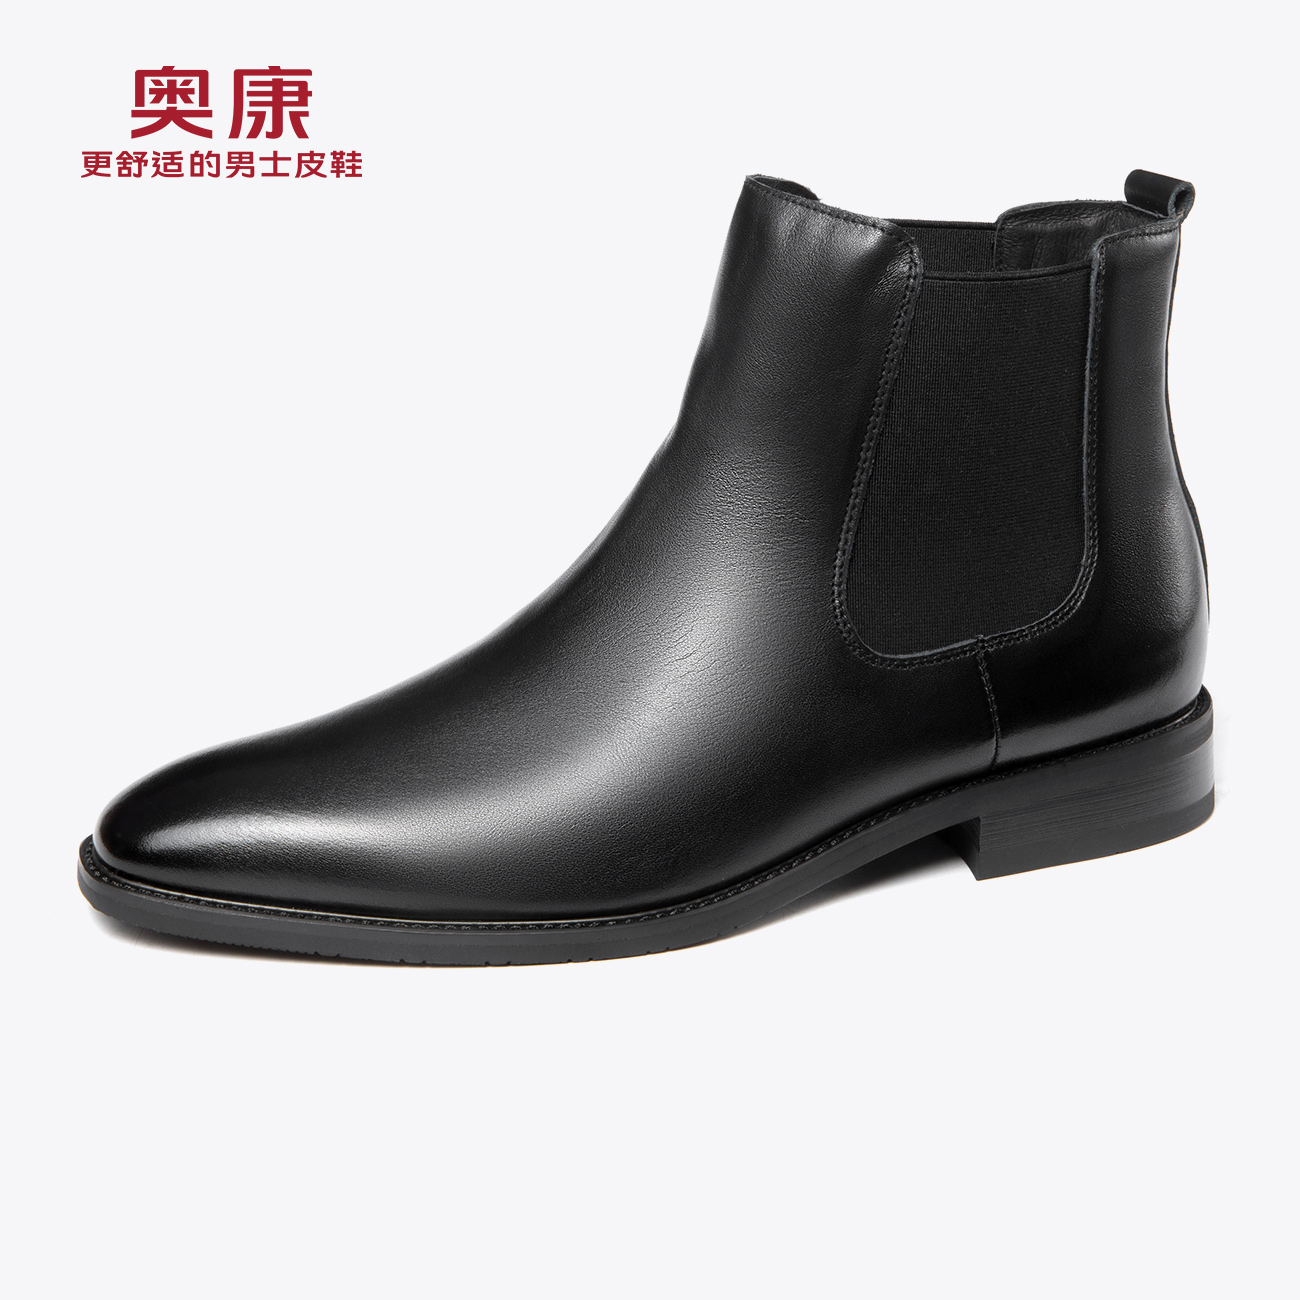 Aokang mens shoes 2021 winter new leather mens boots Chelsea boots fashion casual solid color mens shoes trend